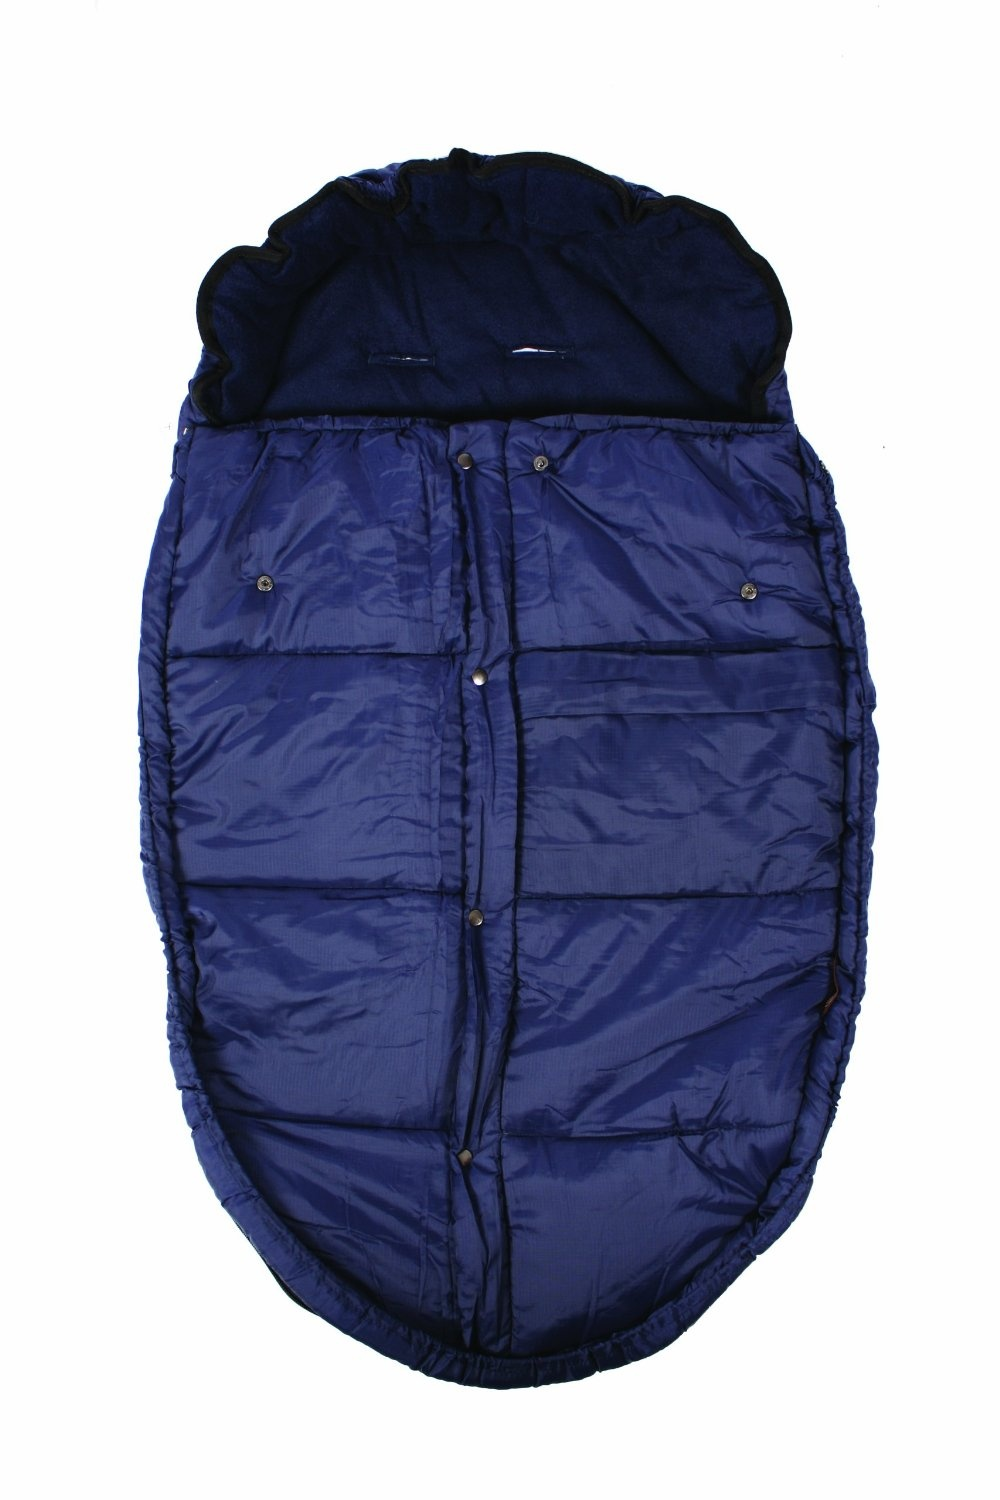 Sleeping bag NAVY-30